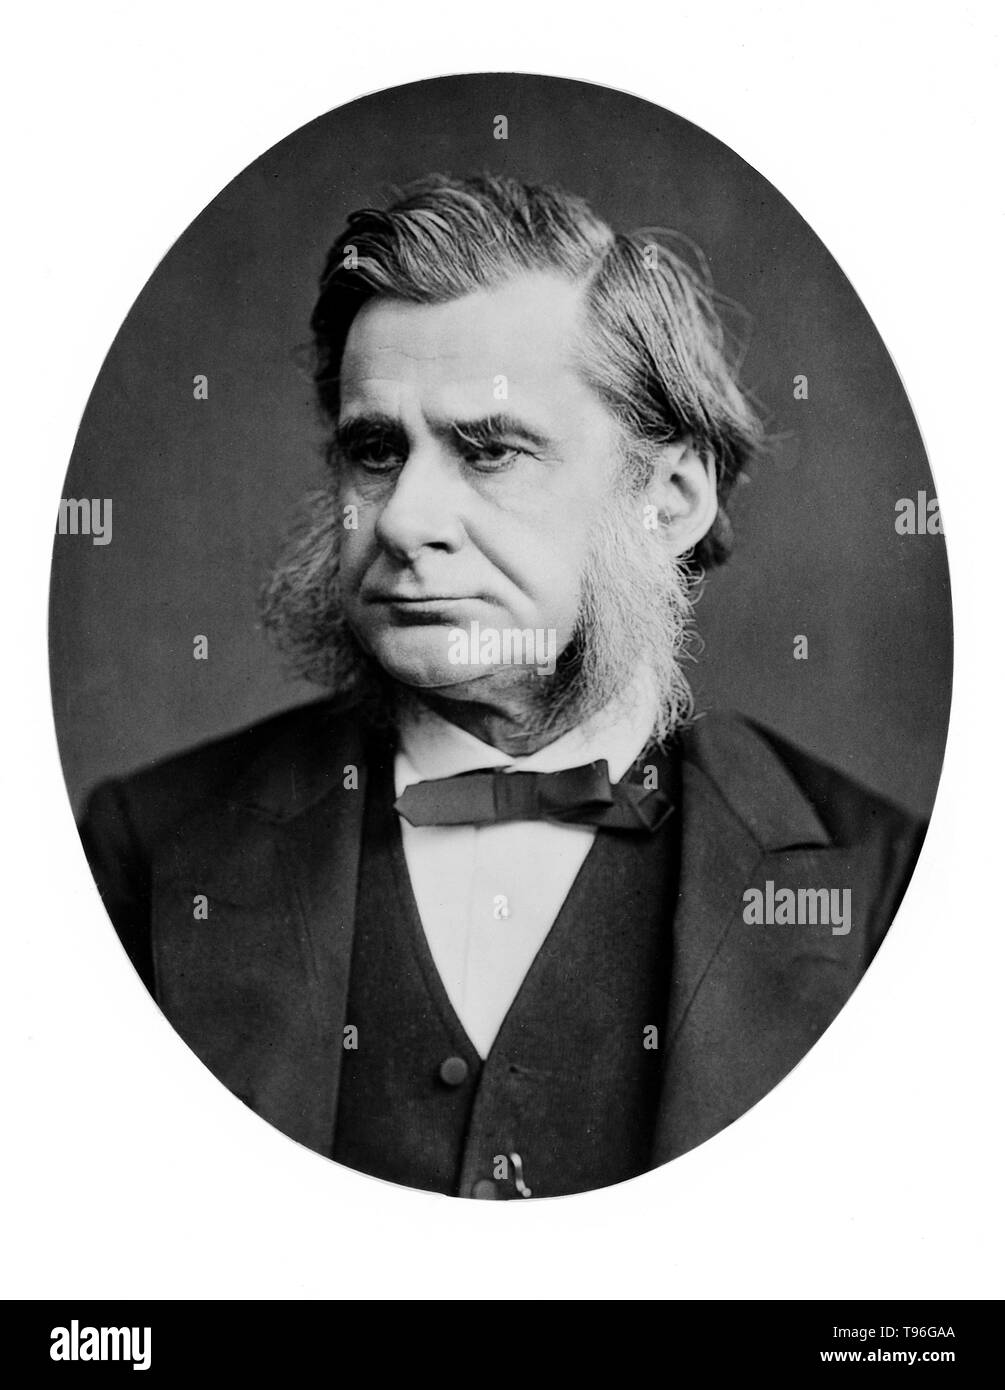 Thomas Henry Huxley (May 4, 1825 - June 29, 1895) was an English biologist, known as 'Darwin's Bulldog' for his advocacy of Charles Darwin's theory of evolution. Huxley's famous 1860 debate with Samuel Wilberforce was a key moment in the wider acceptance of evolution, and in his own career. Huxley was slow to accept some of Darwin's ideas, such as gradualism, and was undecided about natural selection, but despite this he was wholehearted in his public support of Darwin. - Stock Image